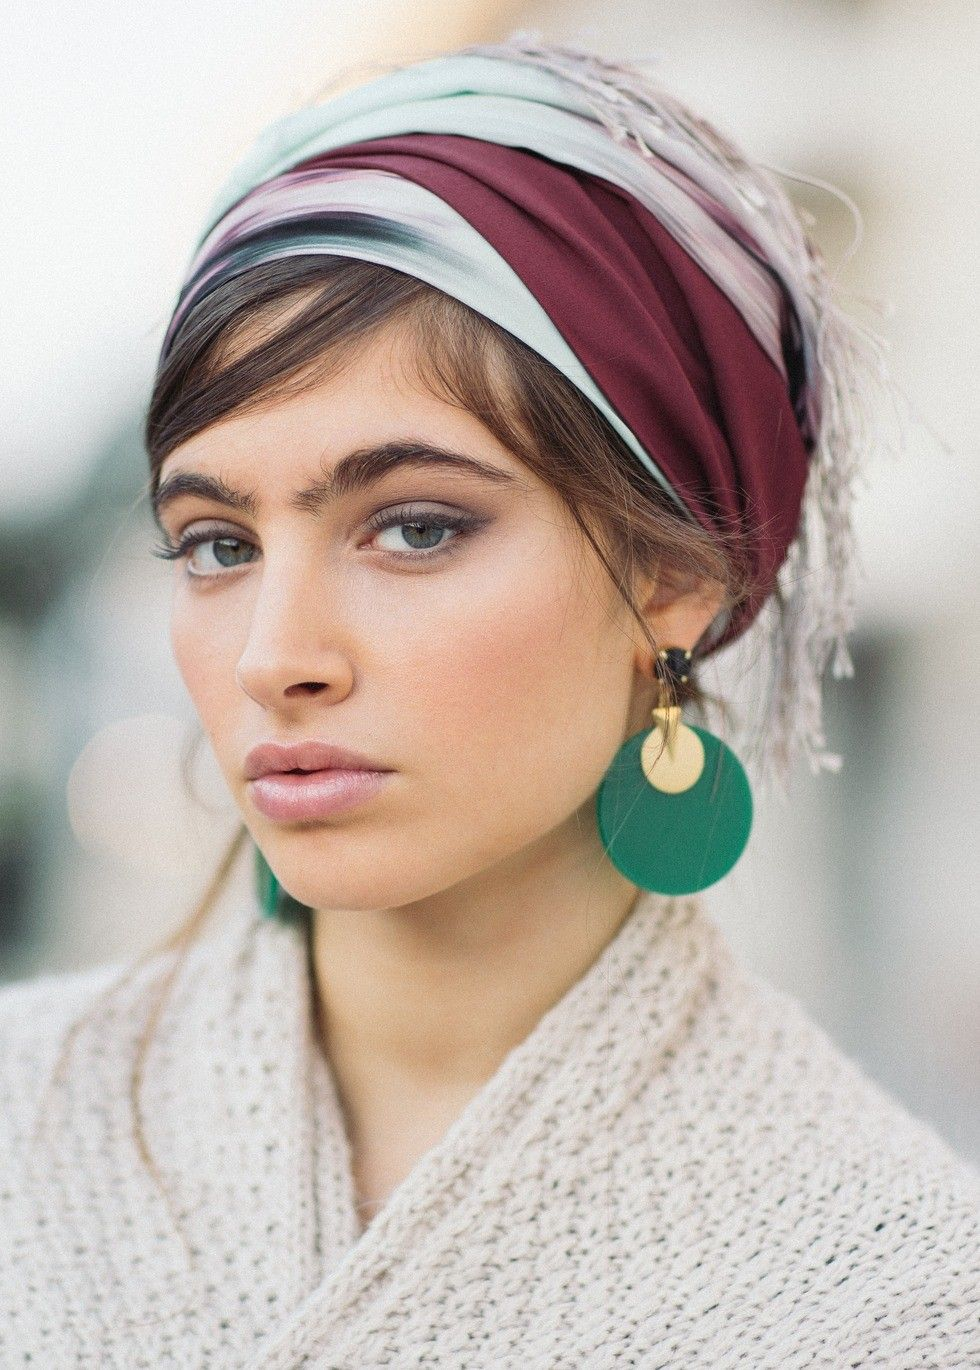 The Fringe Turban Is Made Of A Smooth Printed Fabric